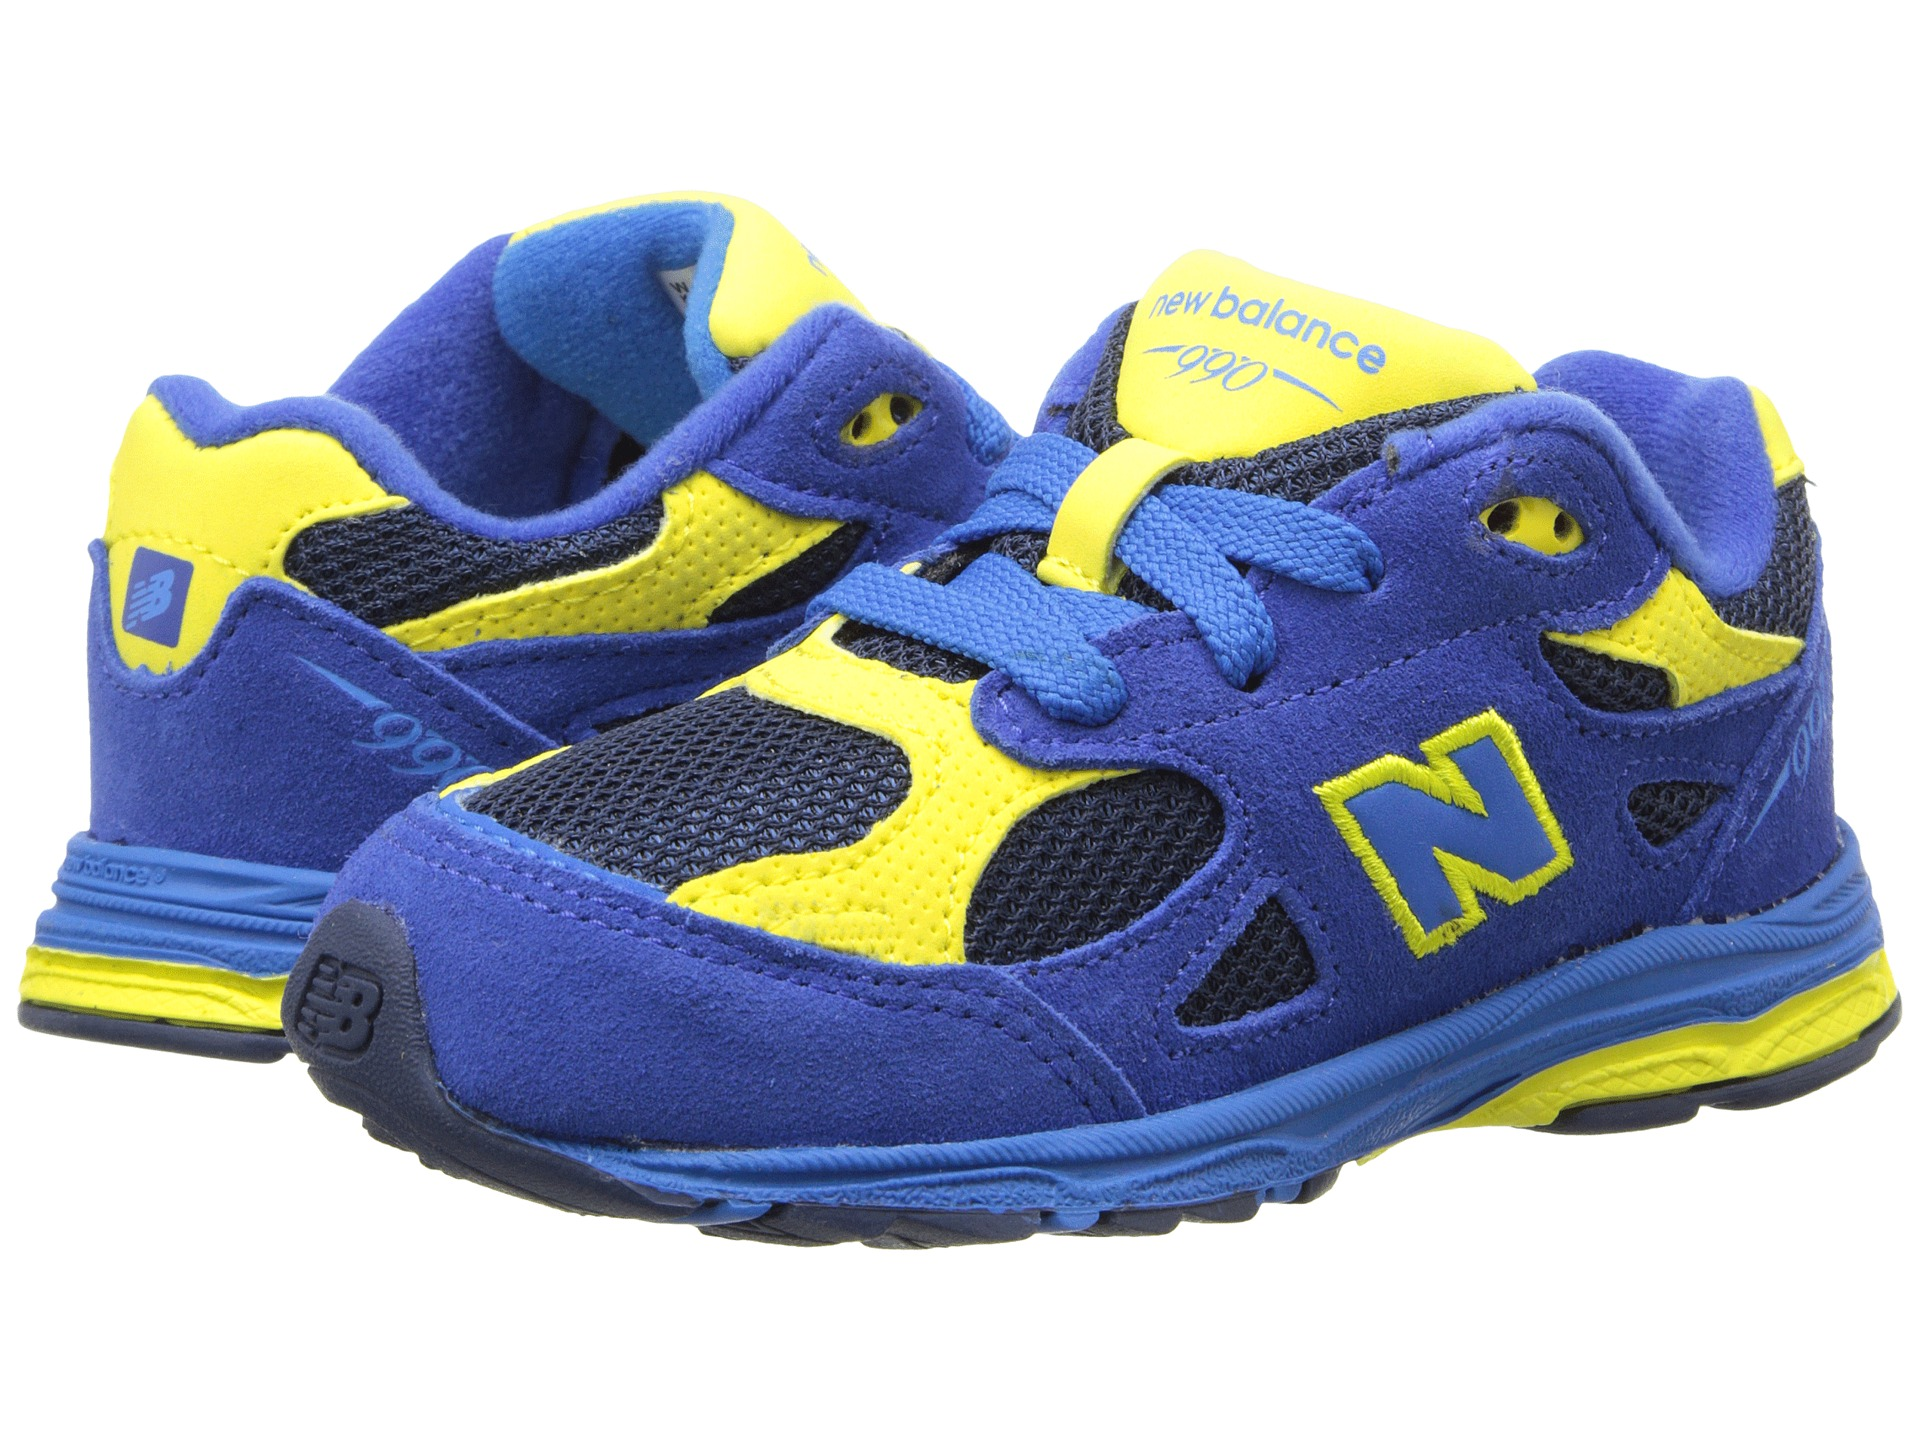 blue and yellow new balance 990